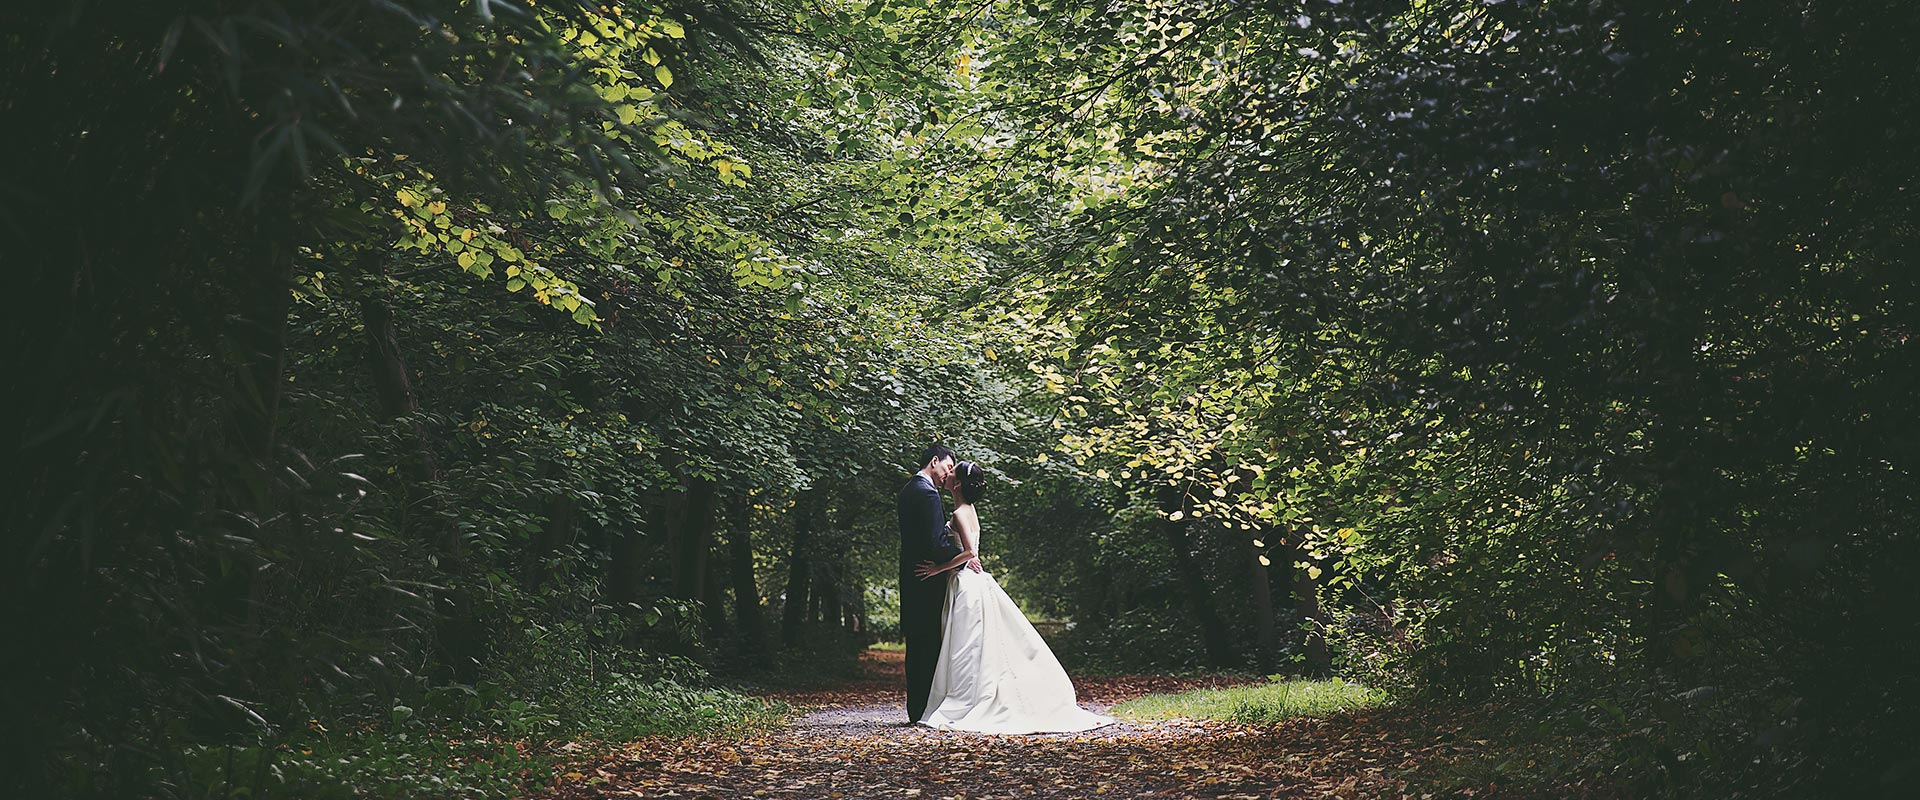 female-wedding-photographer-london-005